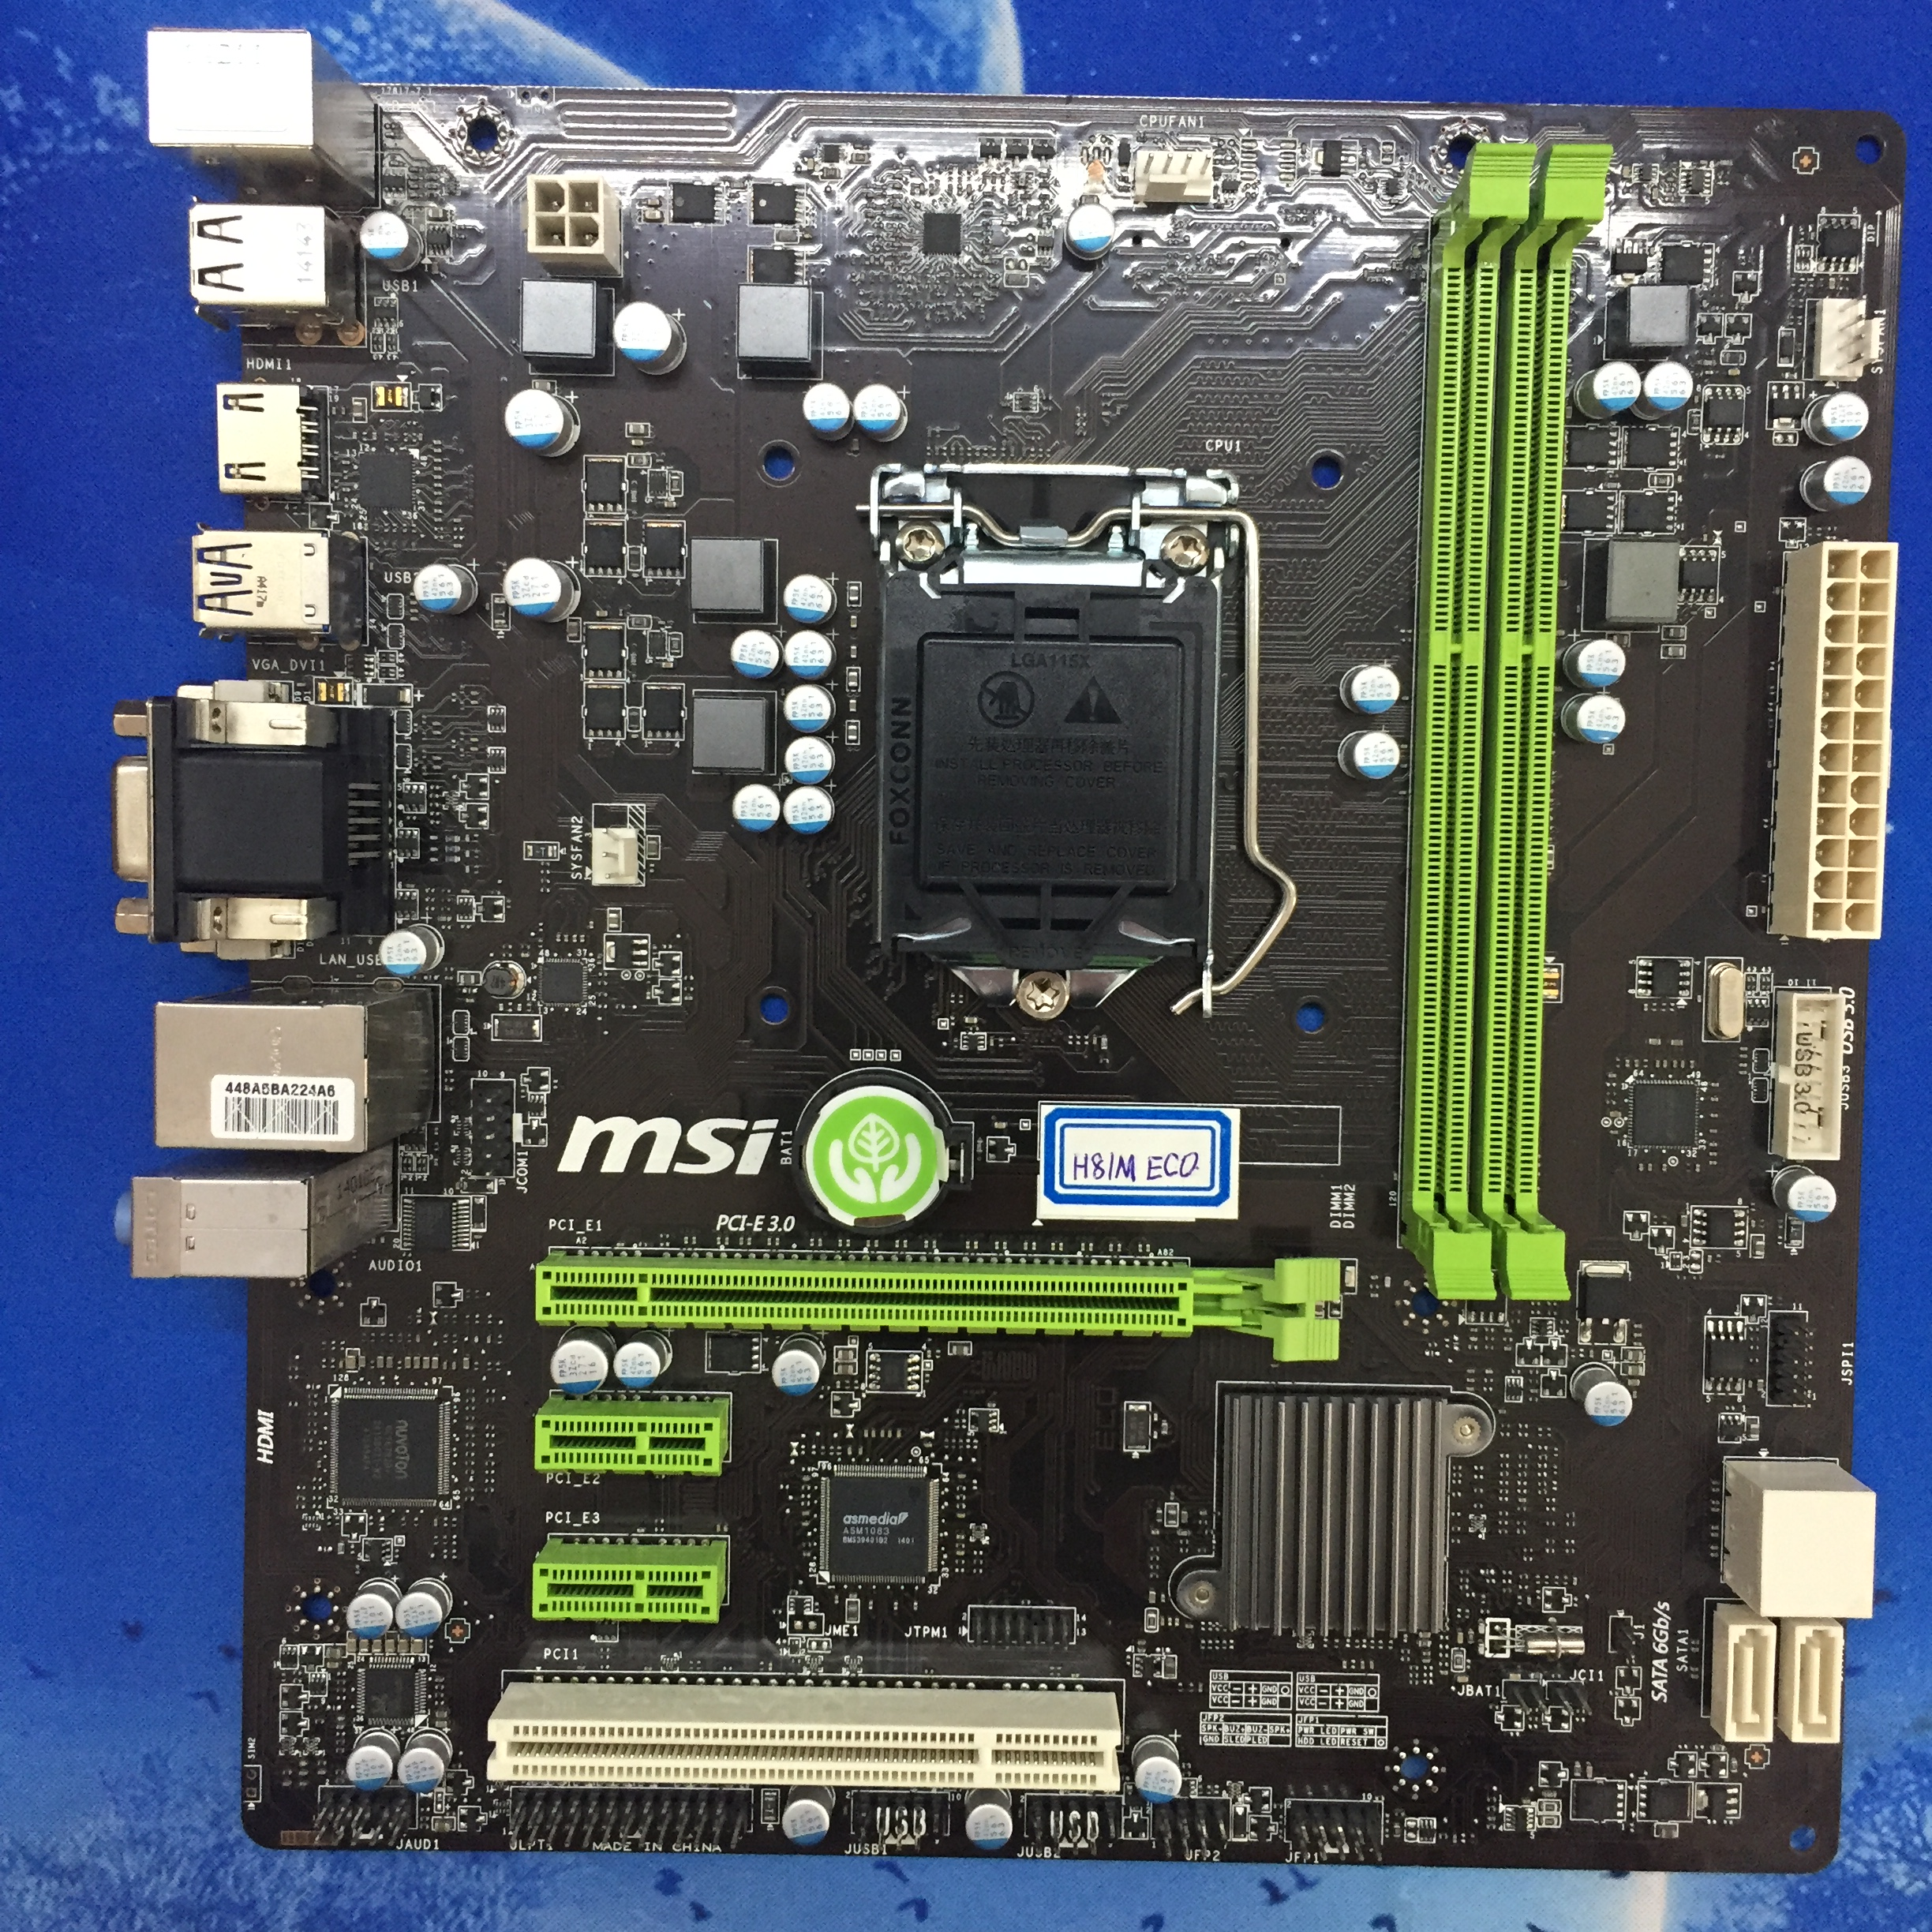 MSI H81M ECO Low-Power, Energy-Efficient H81 Motherboard 1150-pin Motherboard msi h110m eco